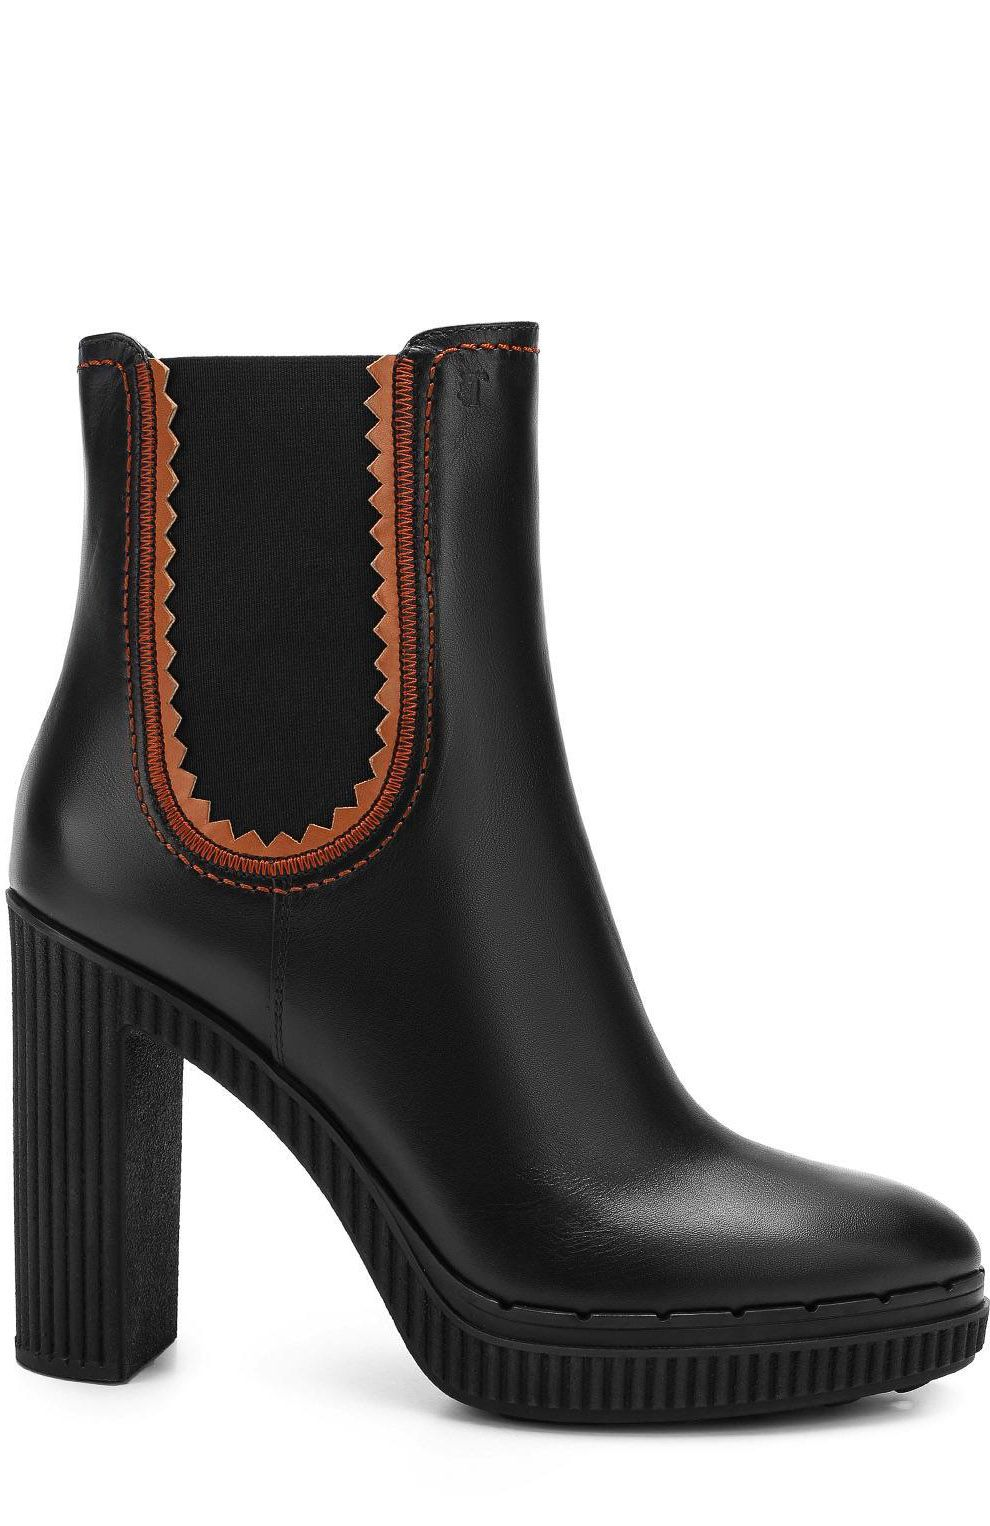 Tod's High Heeled Black Leather Booties